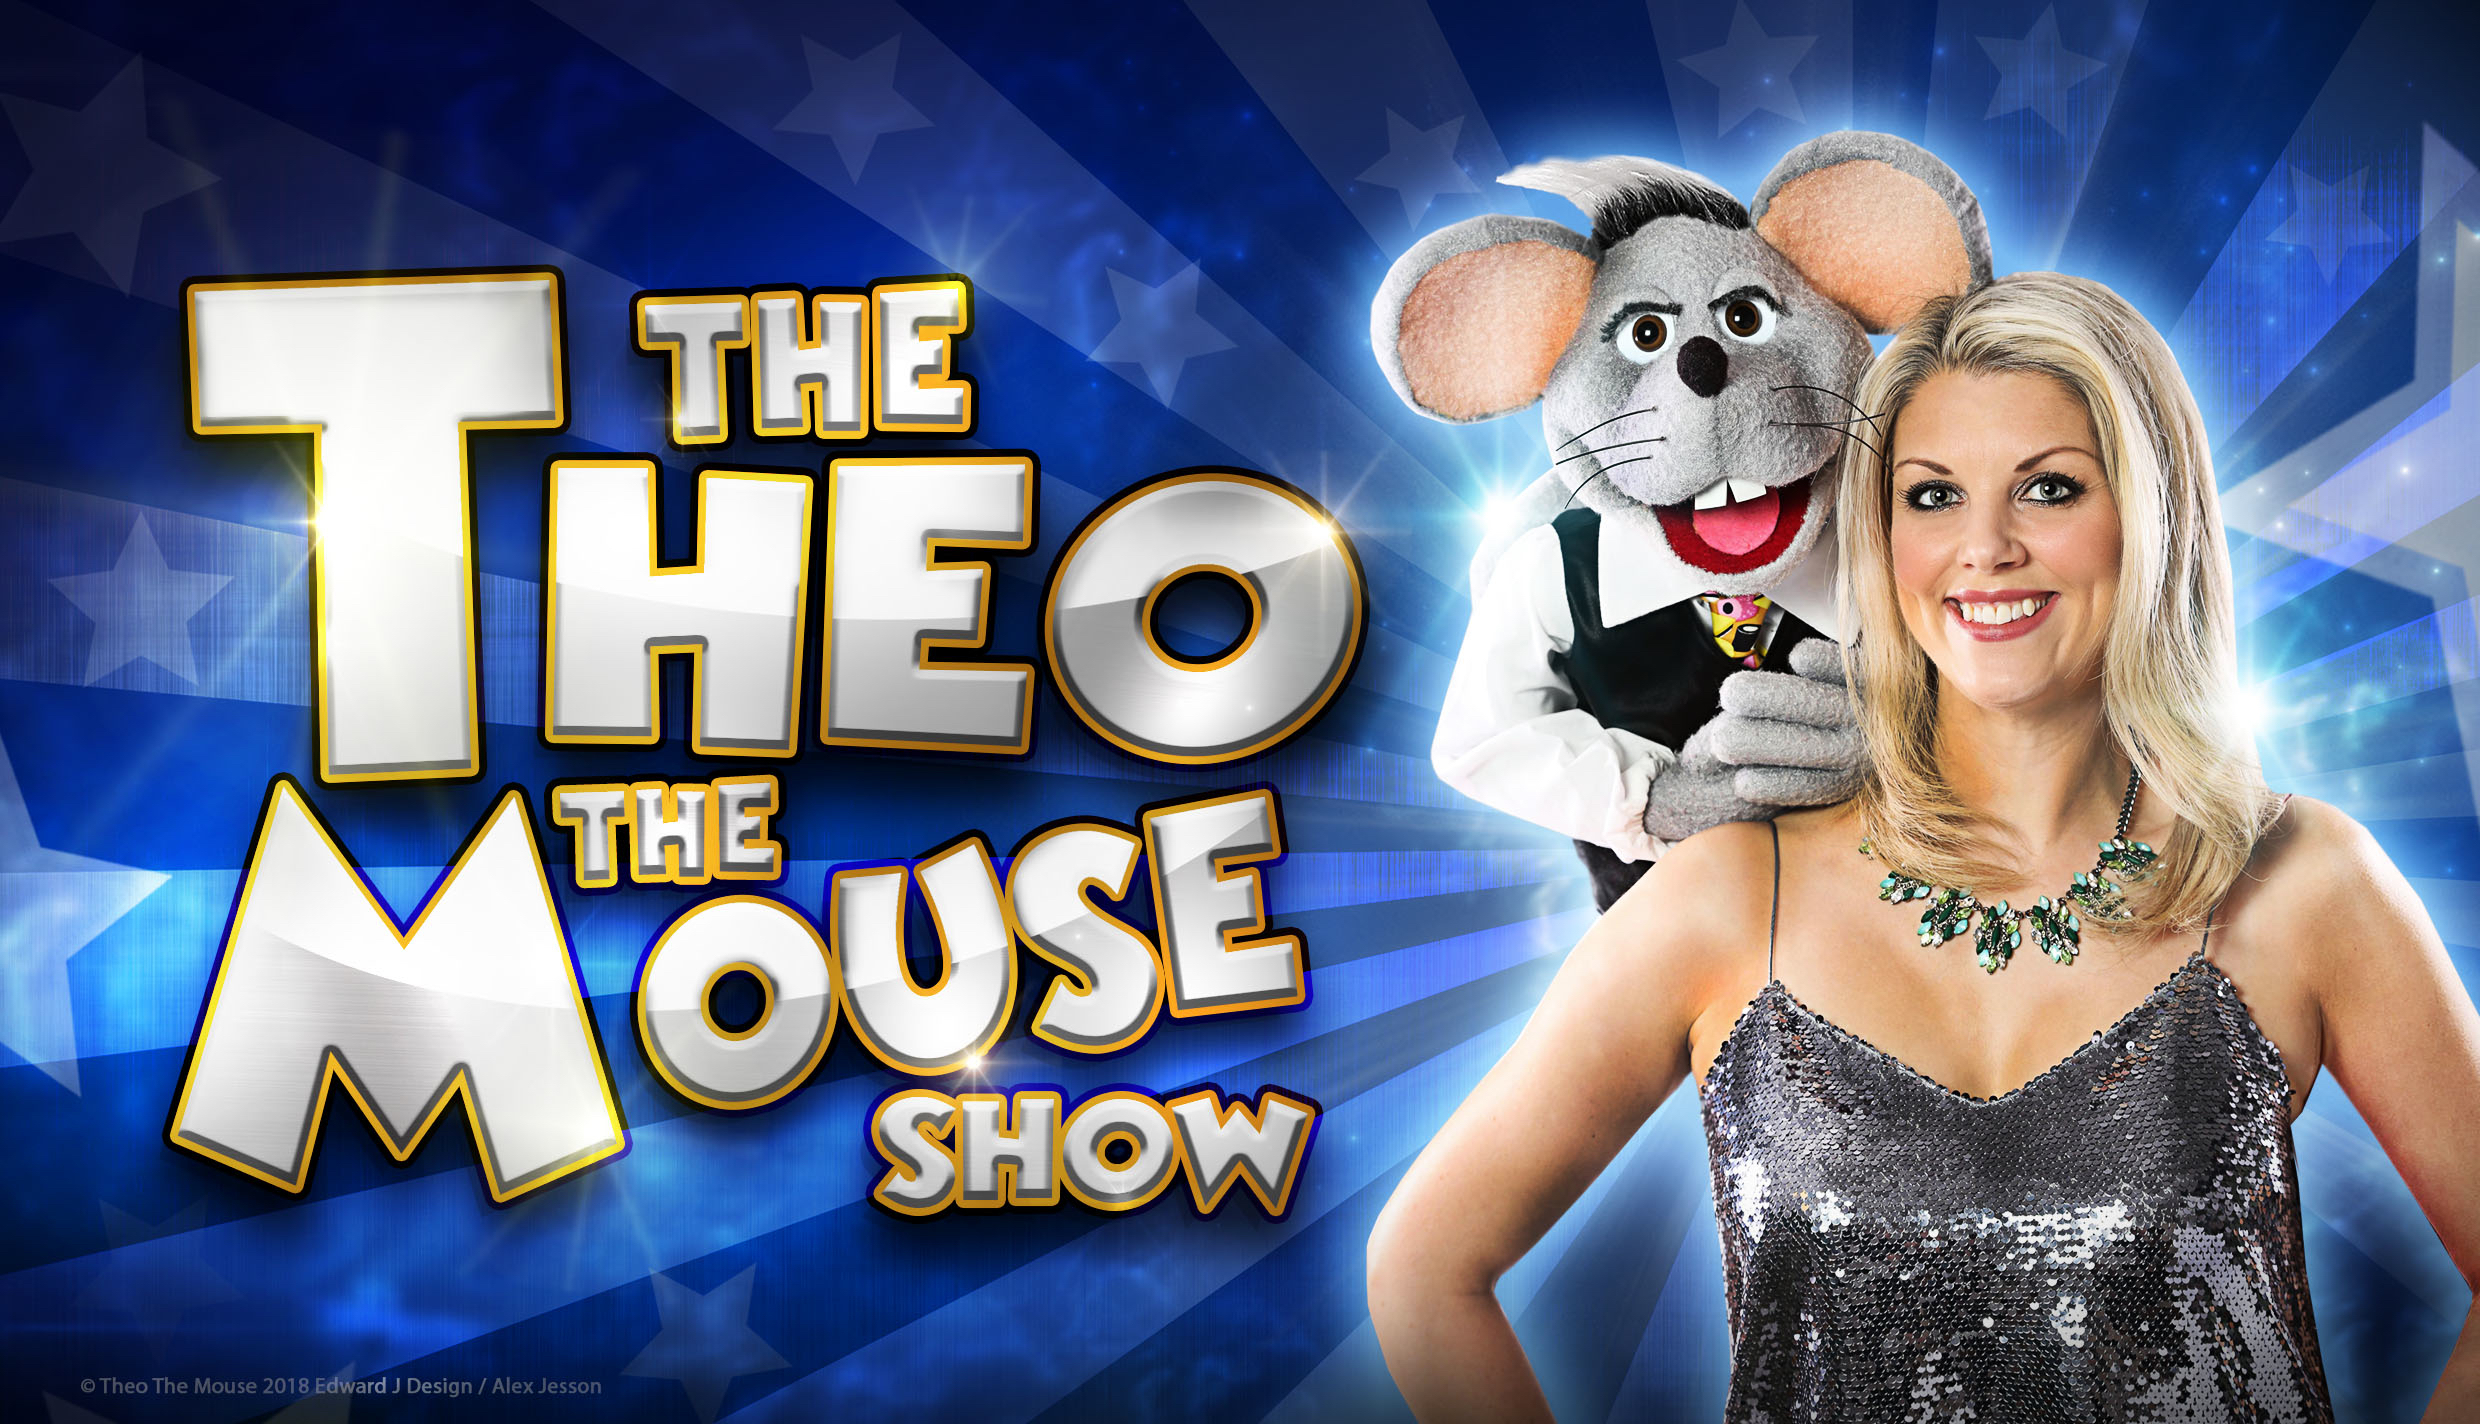 Edutainment Licensing Named Distribution Partner for 'The Theo the Mouse Show